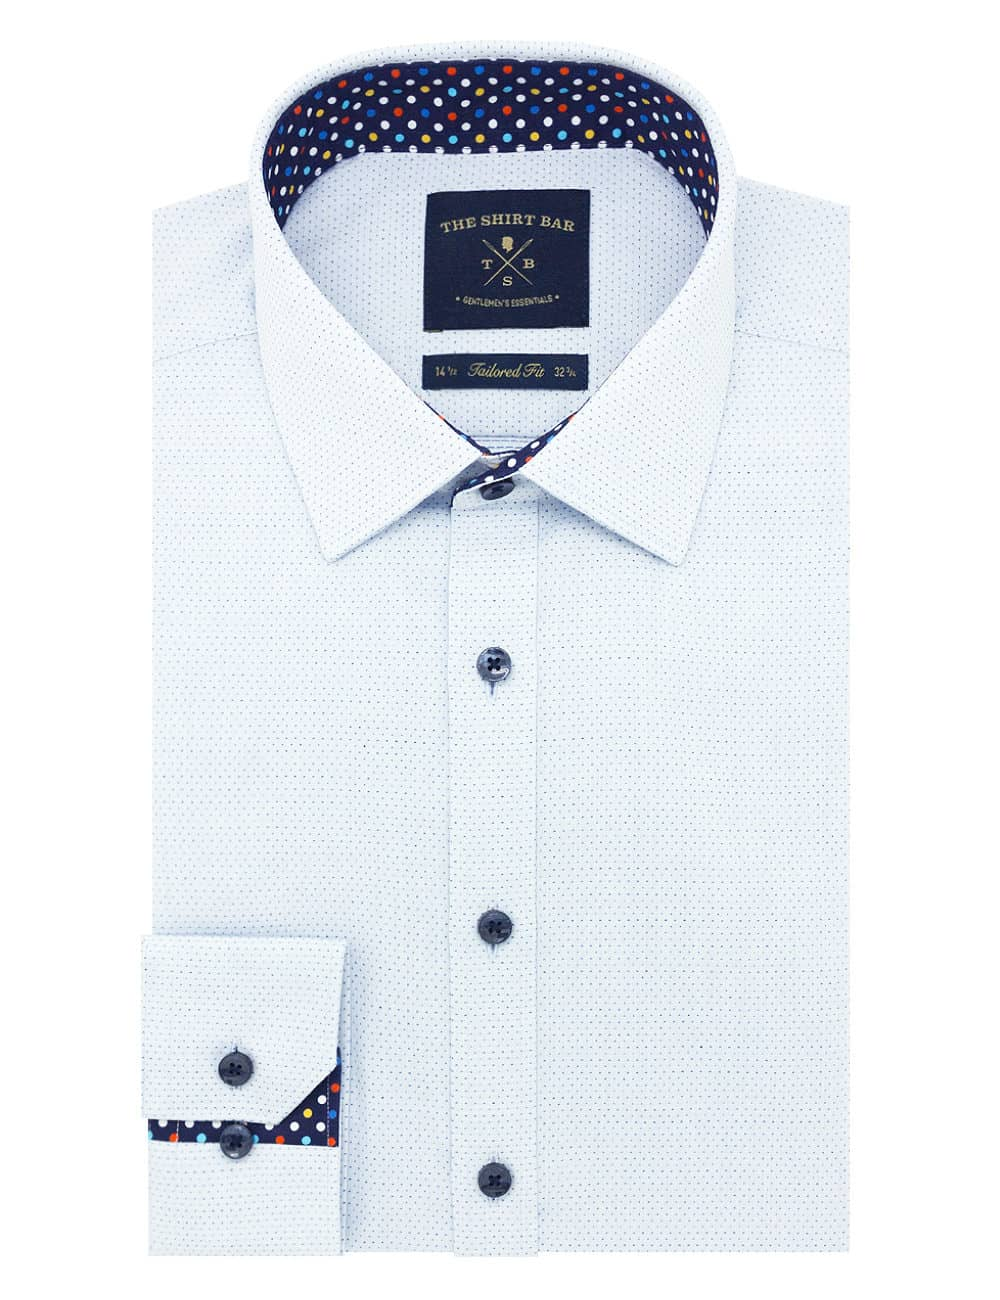 TF Sky Blue with Navy Lines Cotton Blend Spill Resistant Long Sleeve Single Cuff Shirt TF2F2.15